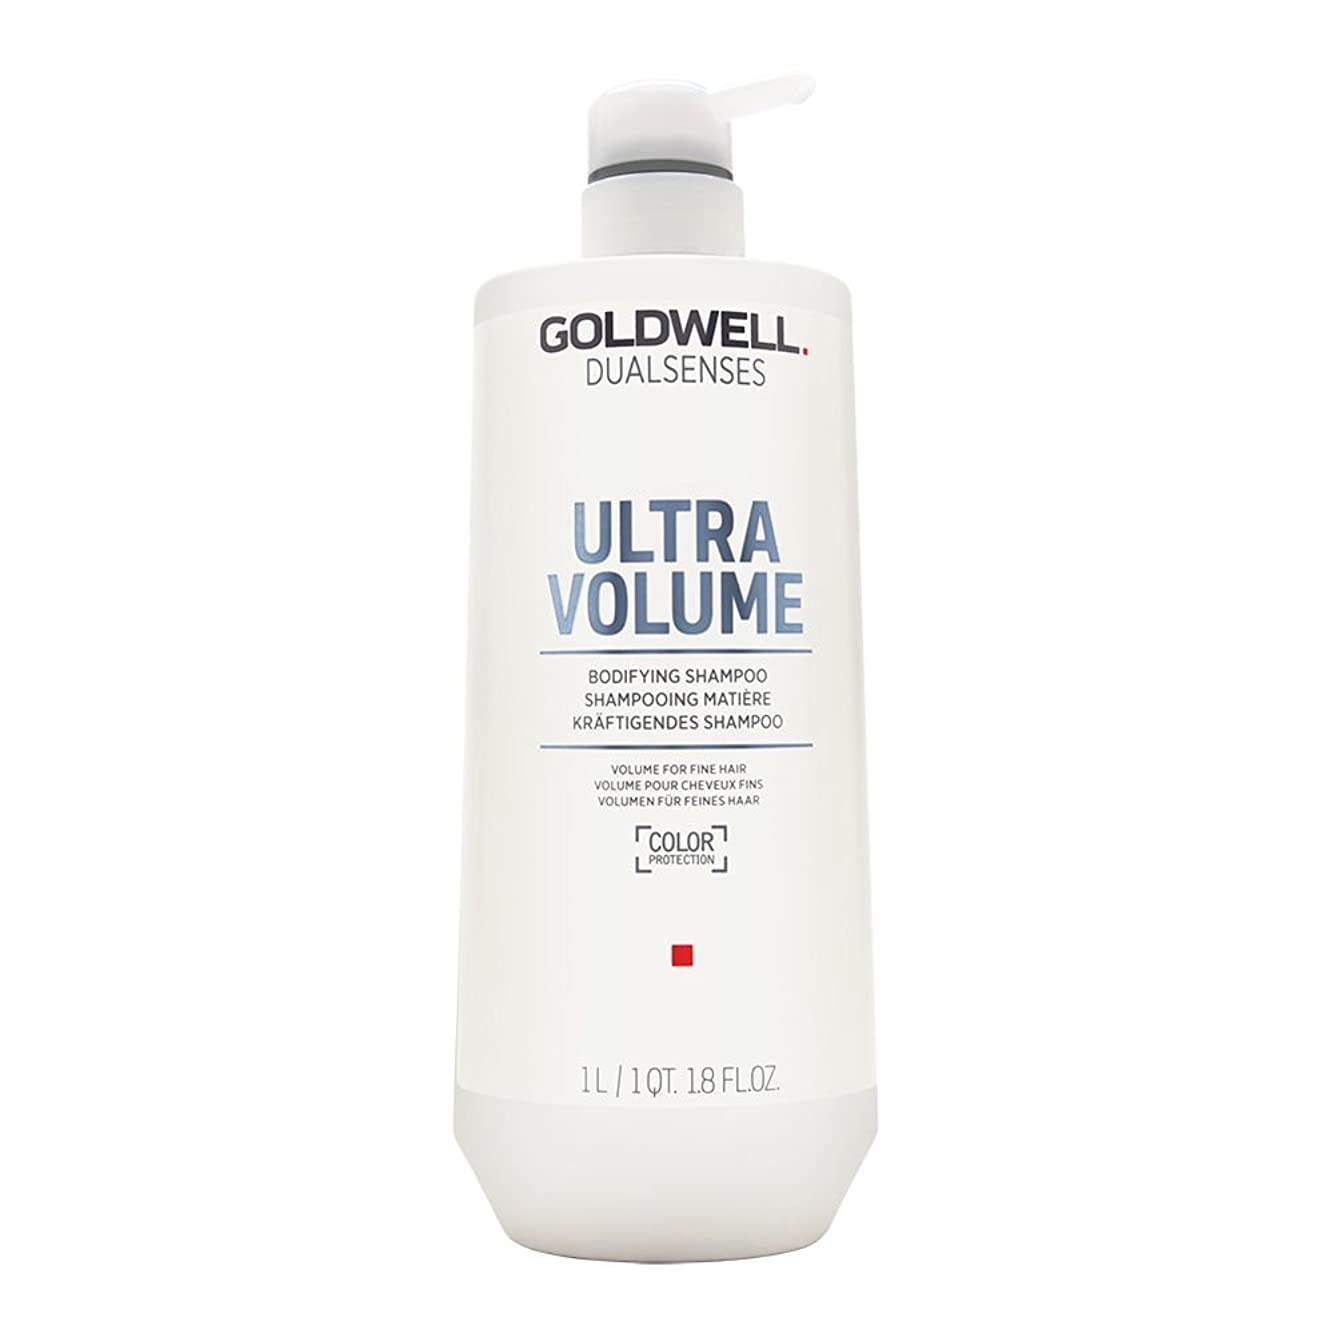 弁護士加害者シャットゴールドウェル Dual Senses Ultra Volume Bodifying Shampoo (Volume For Fine Hair) 1000ml